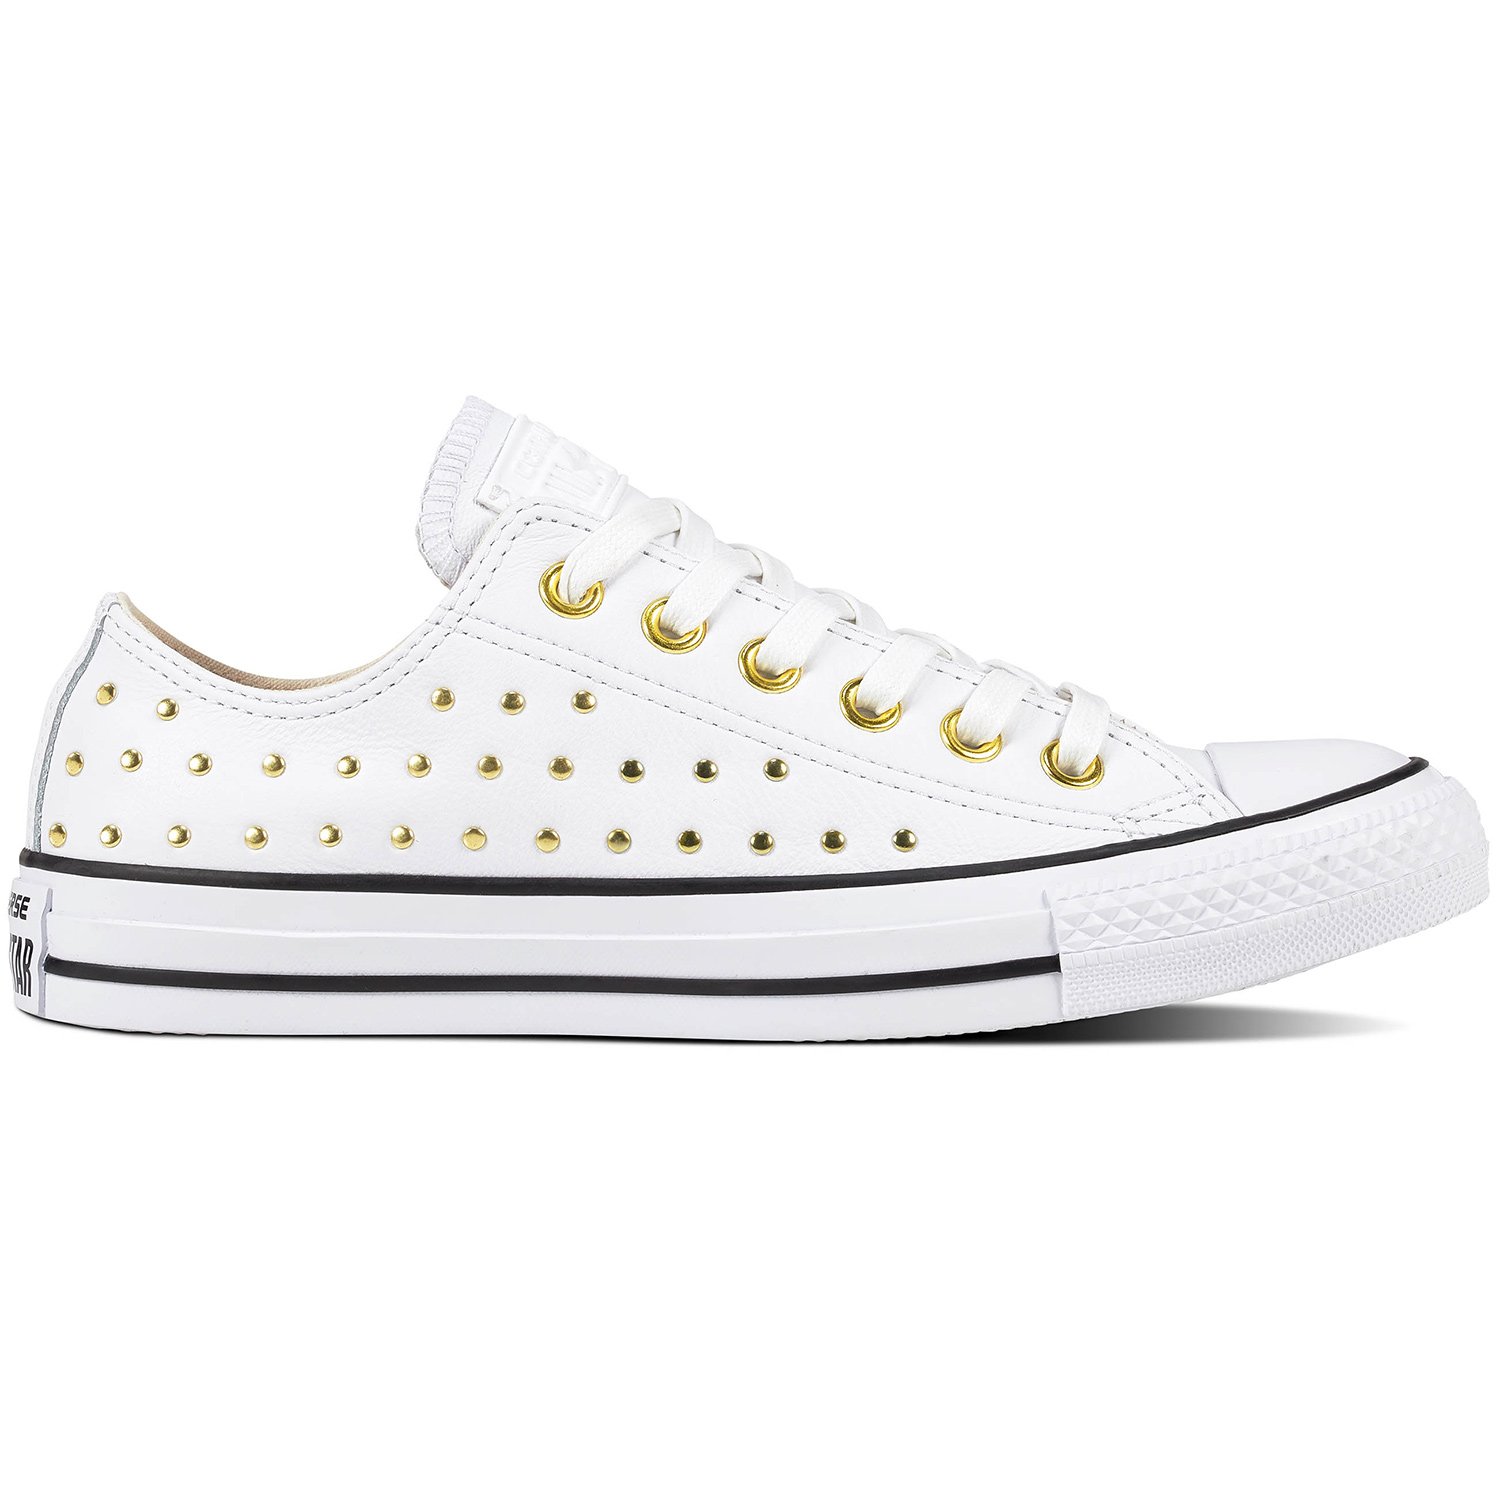 2a03a4f563919 Converse CT AS OX Chuck Taylor All Star weiß gold 561684C